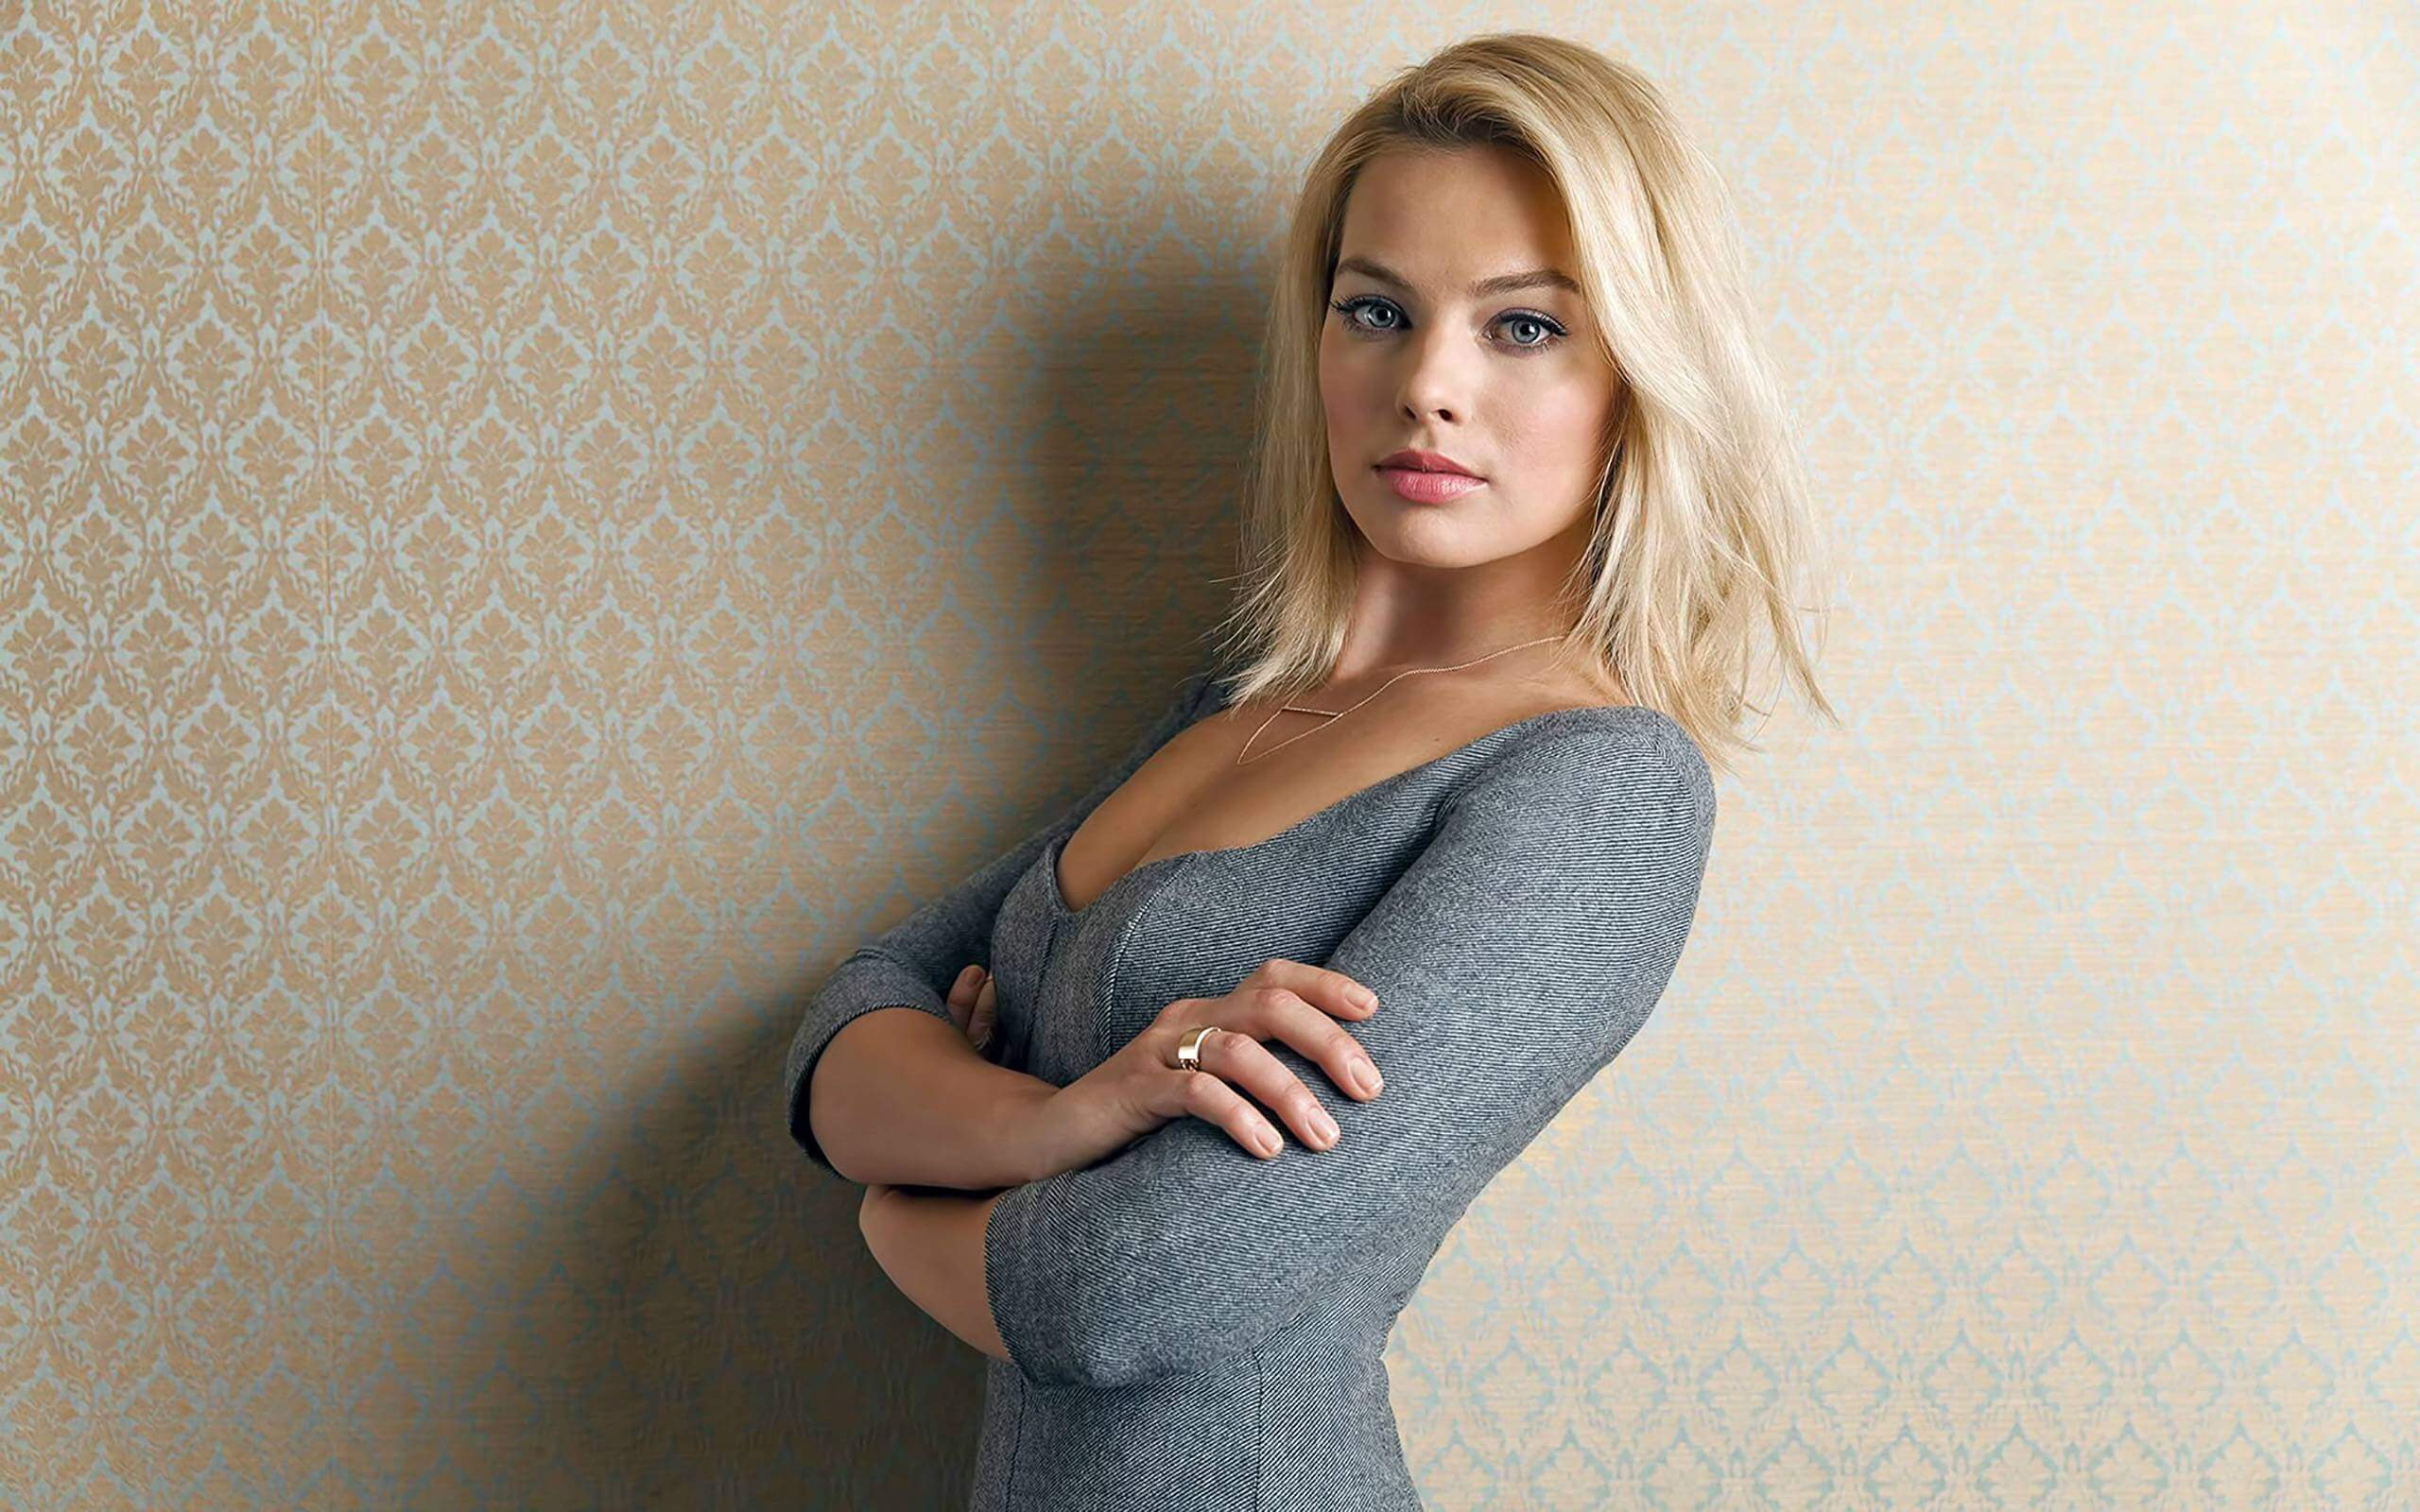 margot robbie hot busty pic